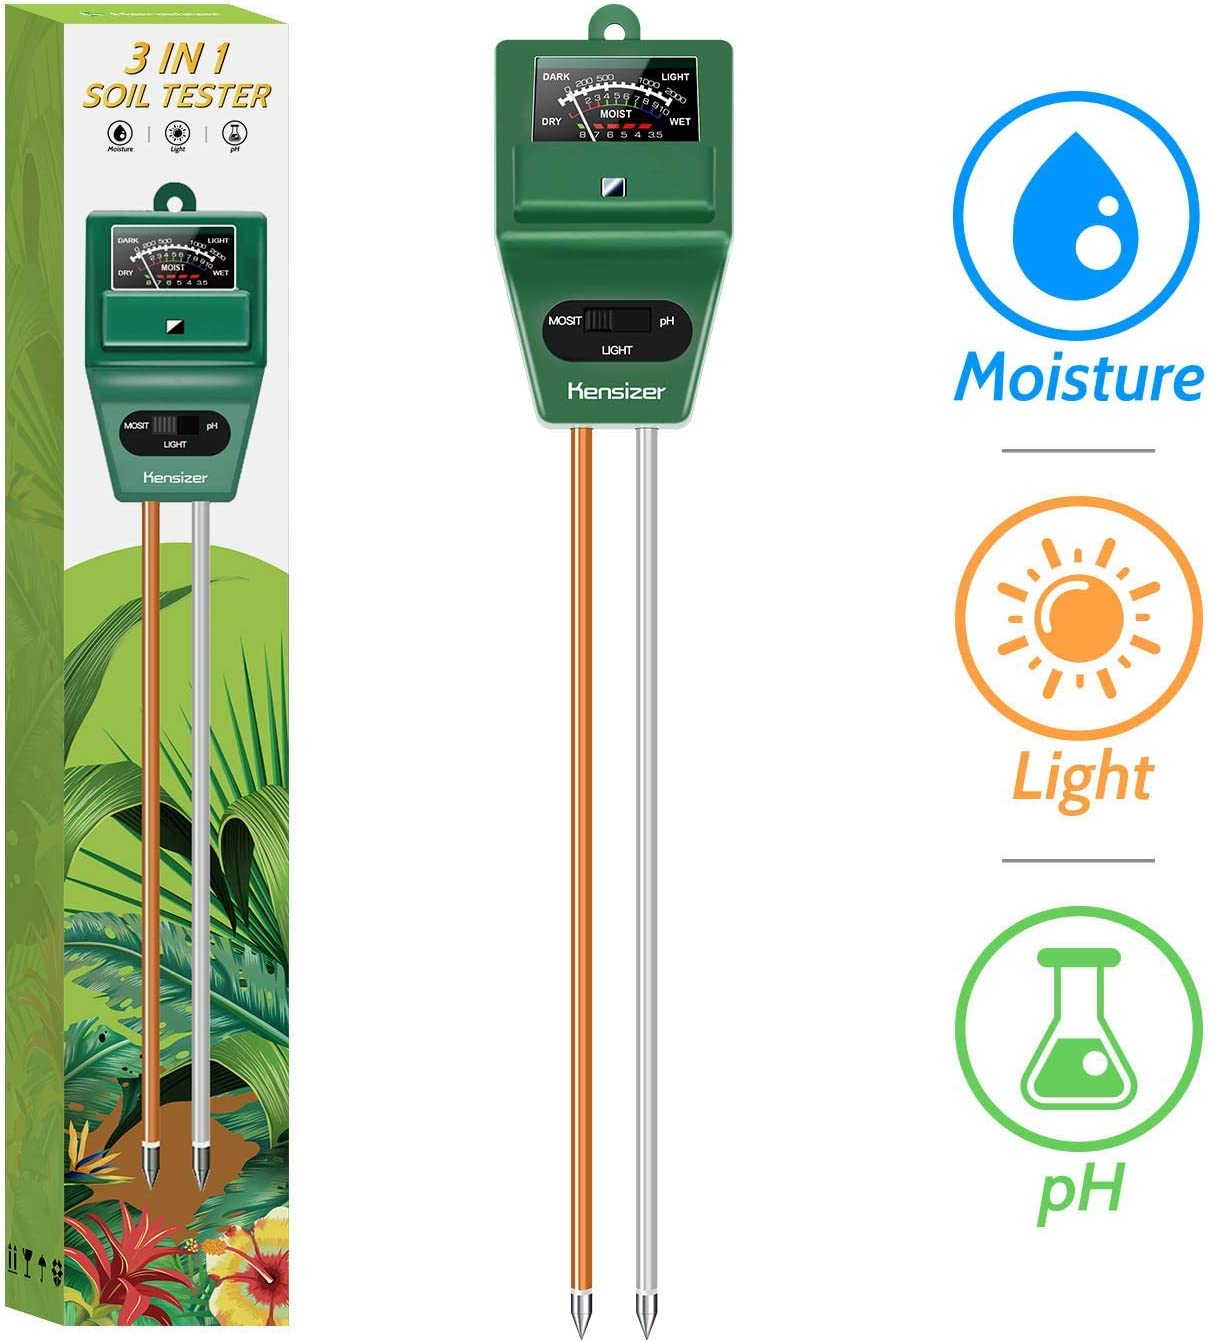 Kensizer Soil Tester, 3-in-1 Soil Moisture/Light/pH Meter, Gardening Tool kit for Plant Care, No Battery Required